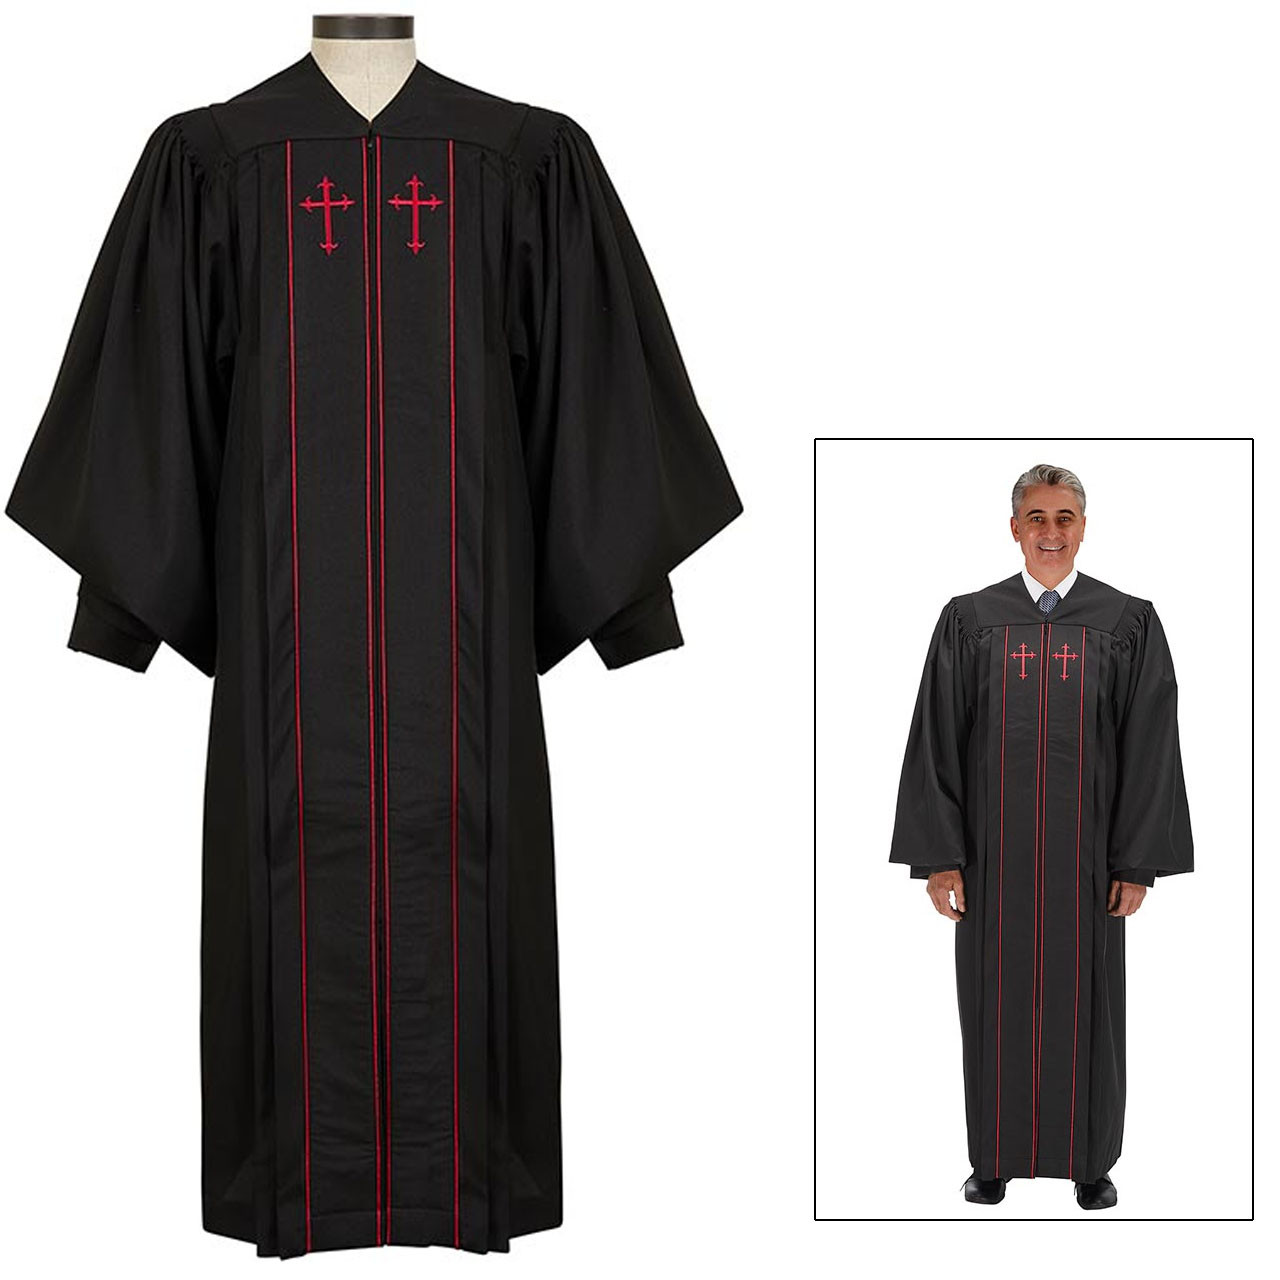 J7152 Cambridge Pulpit Robe w/Red Accents